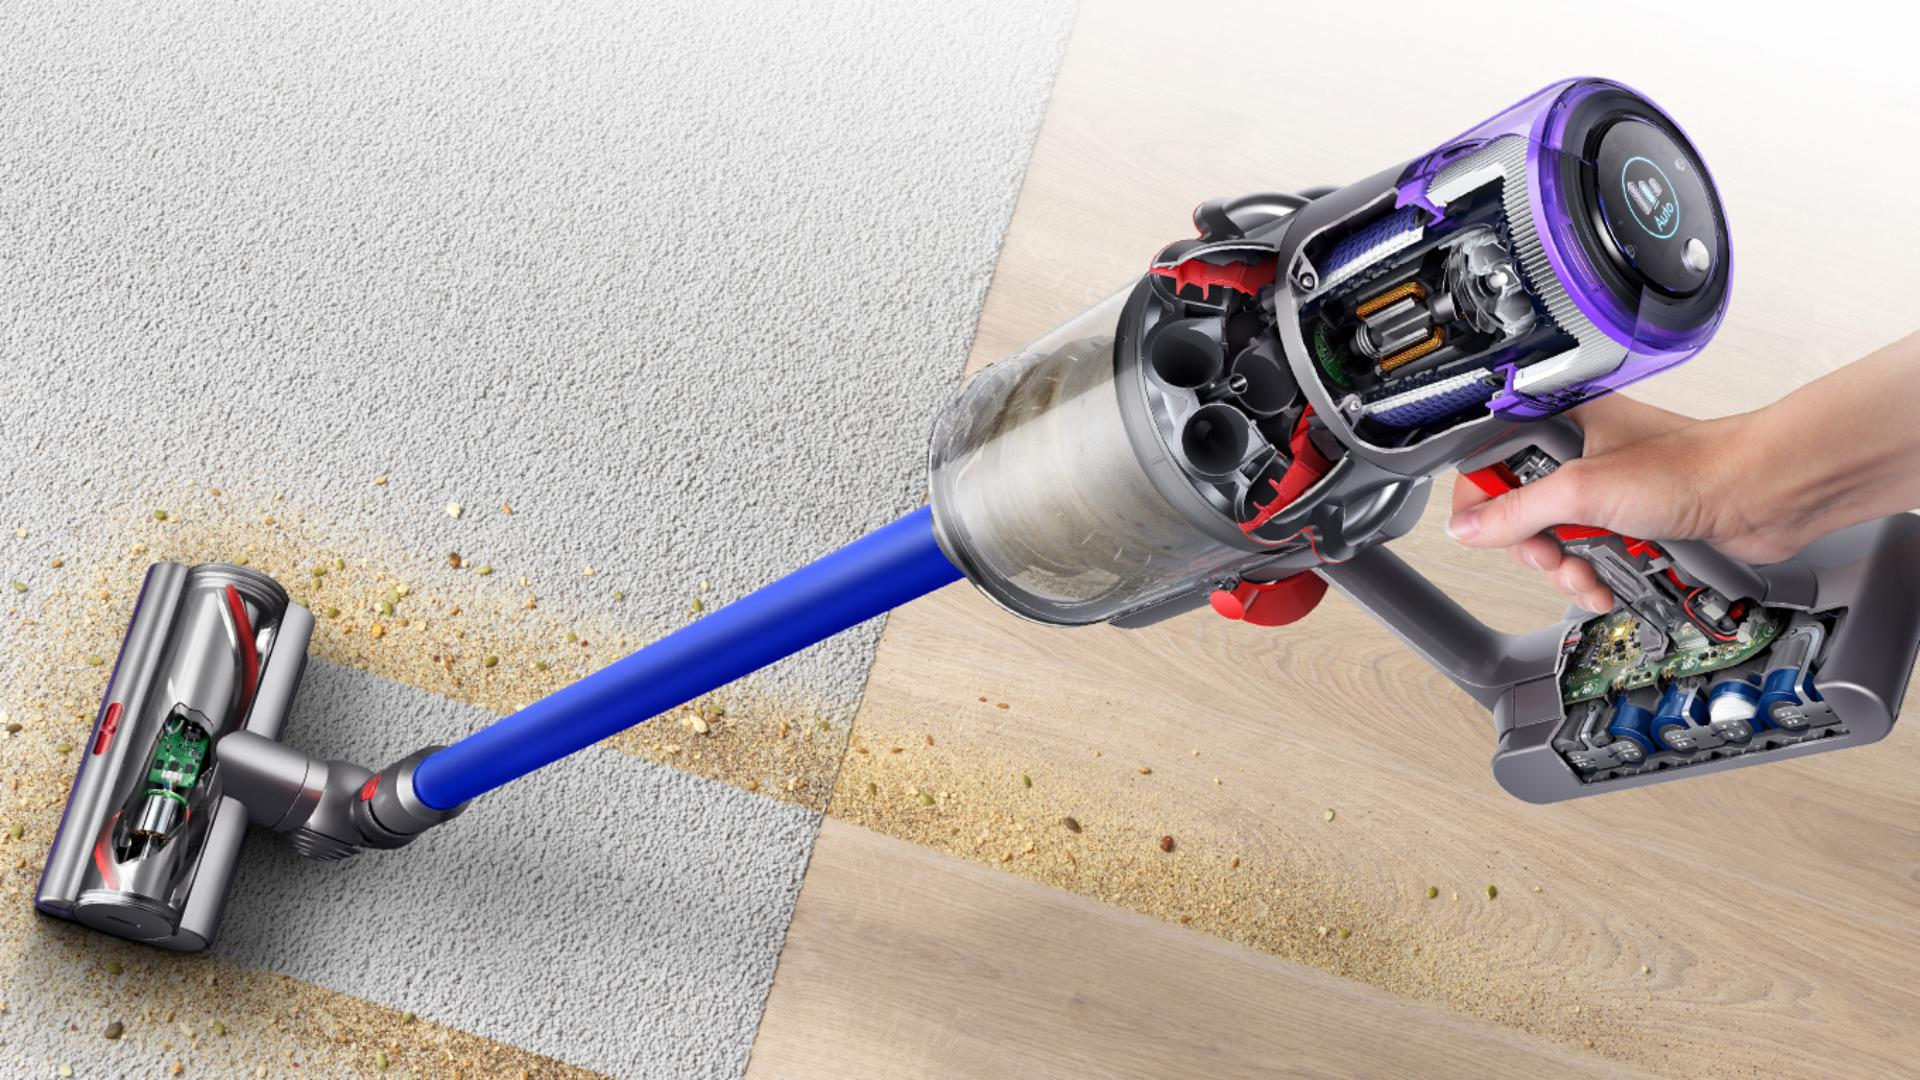 Dyson V11 vaccum cleaner lifting dirt from carpet